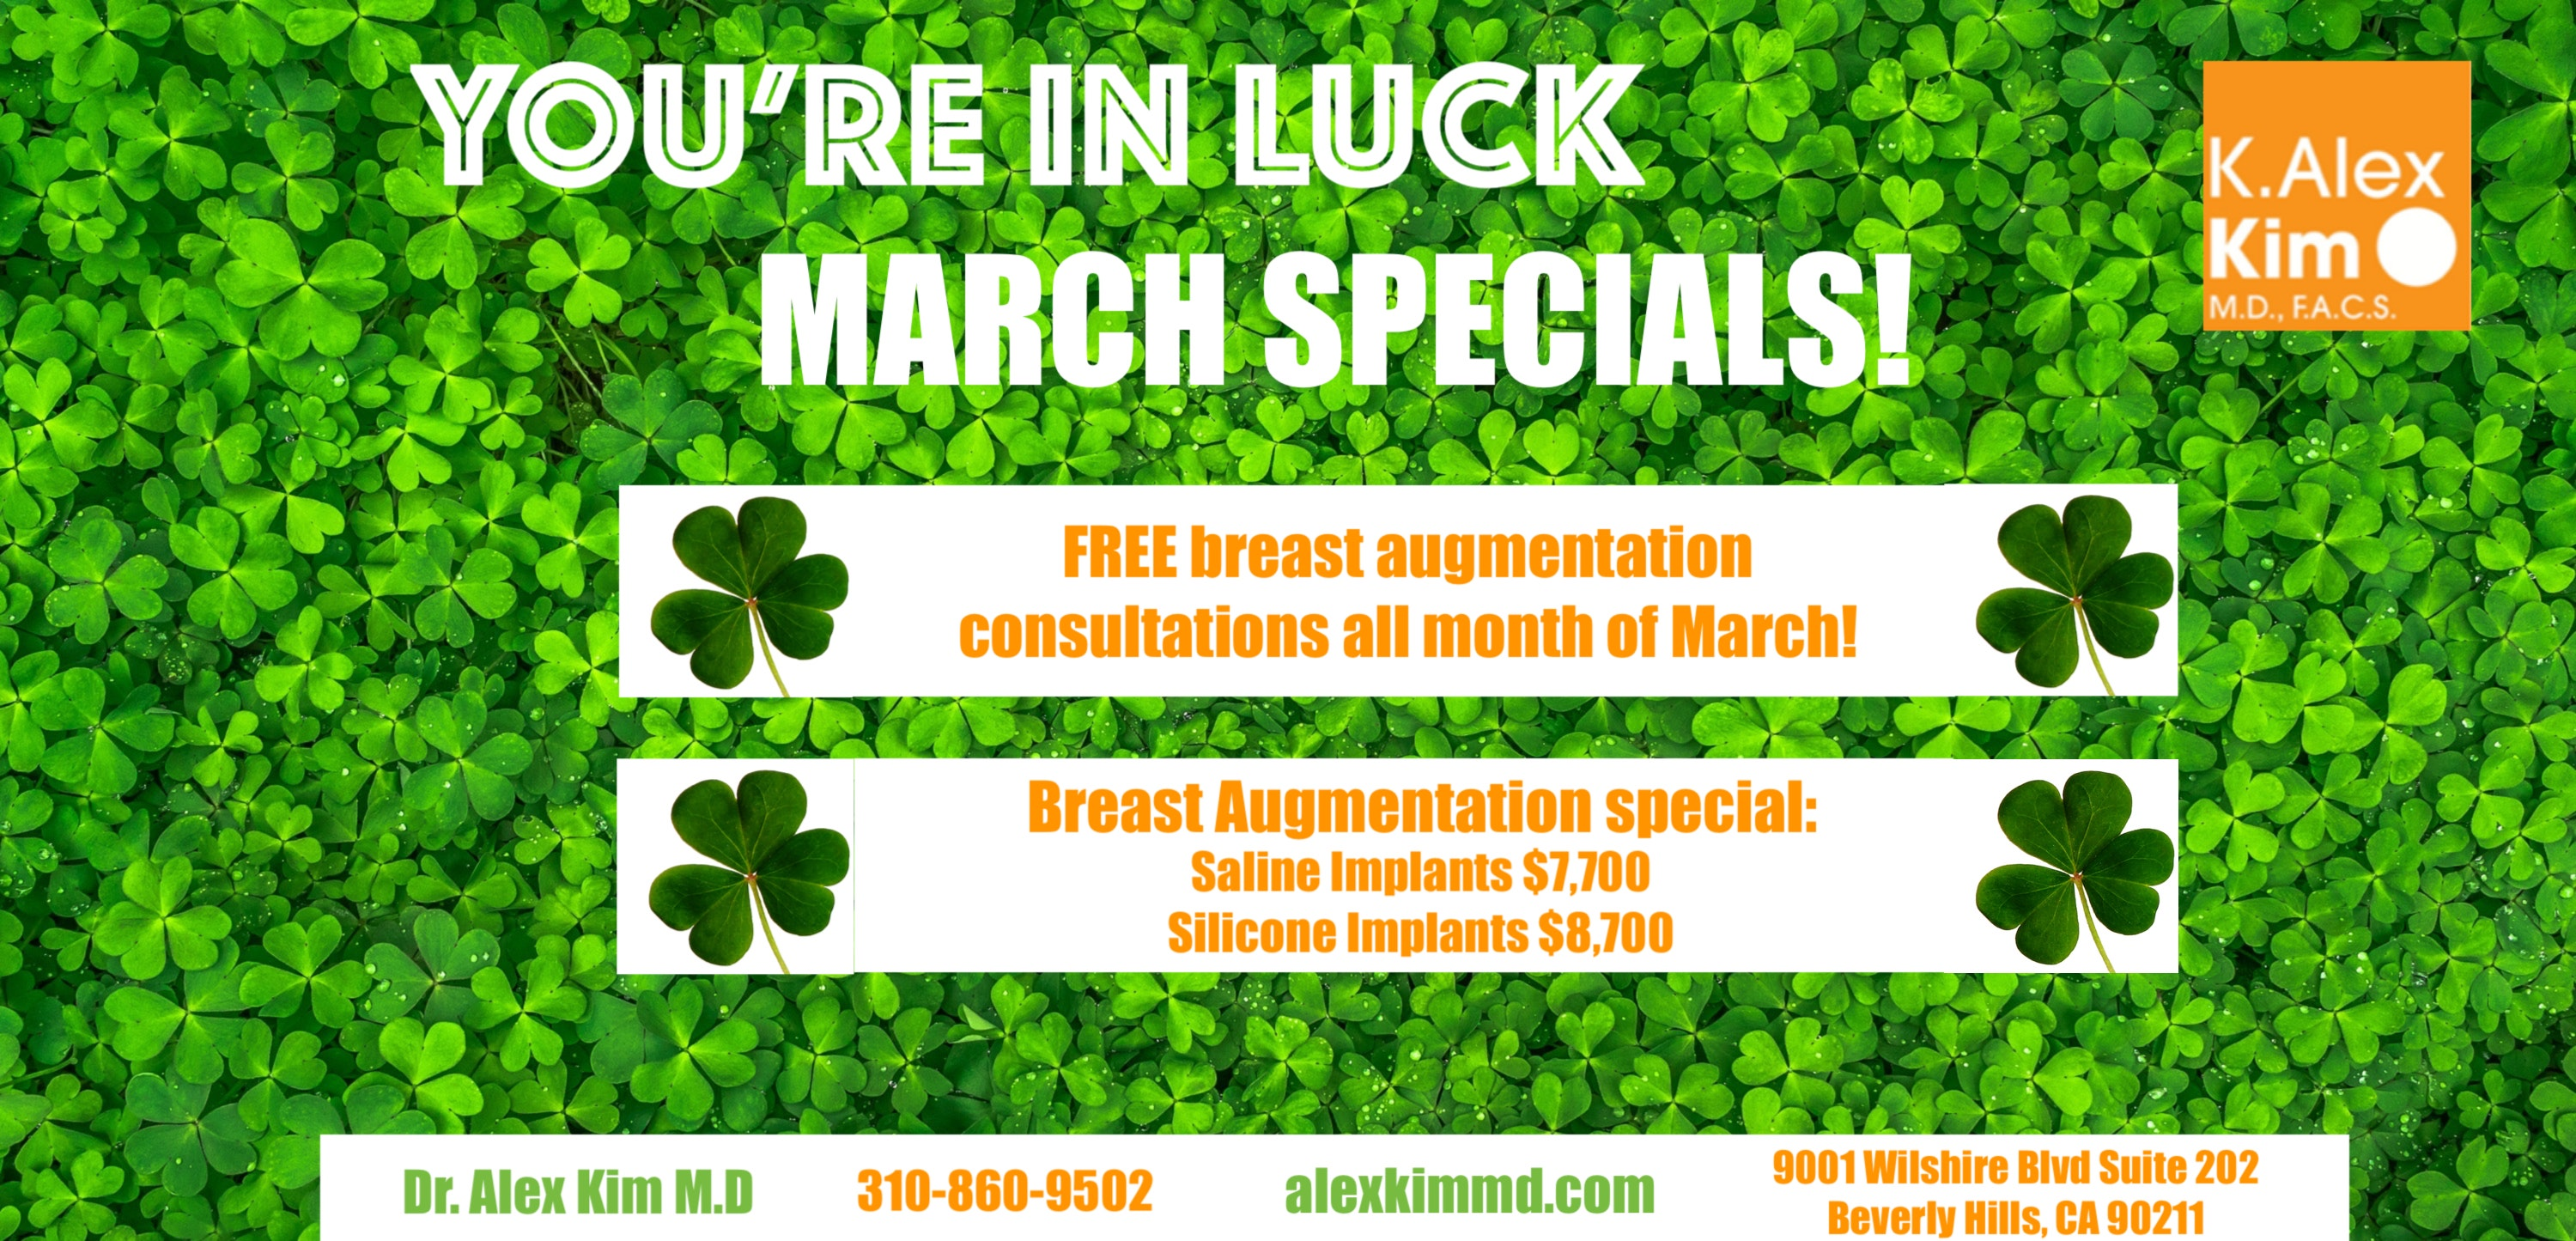 Breast Augmentation special